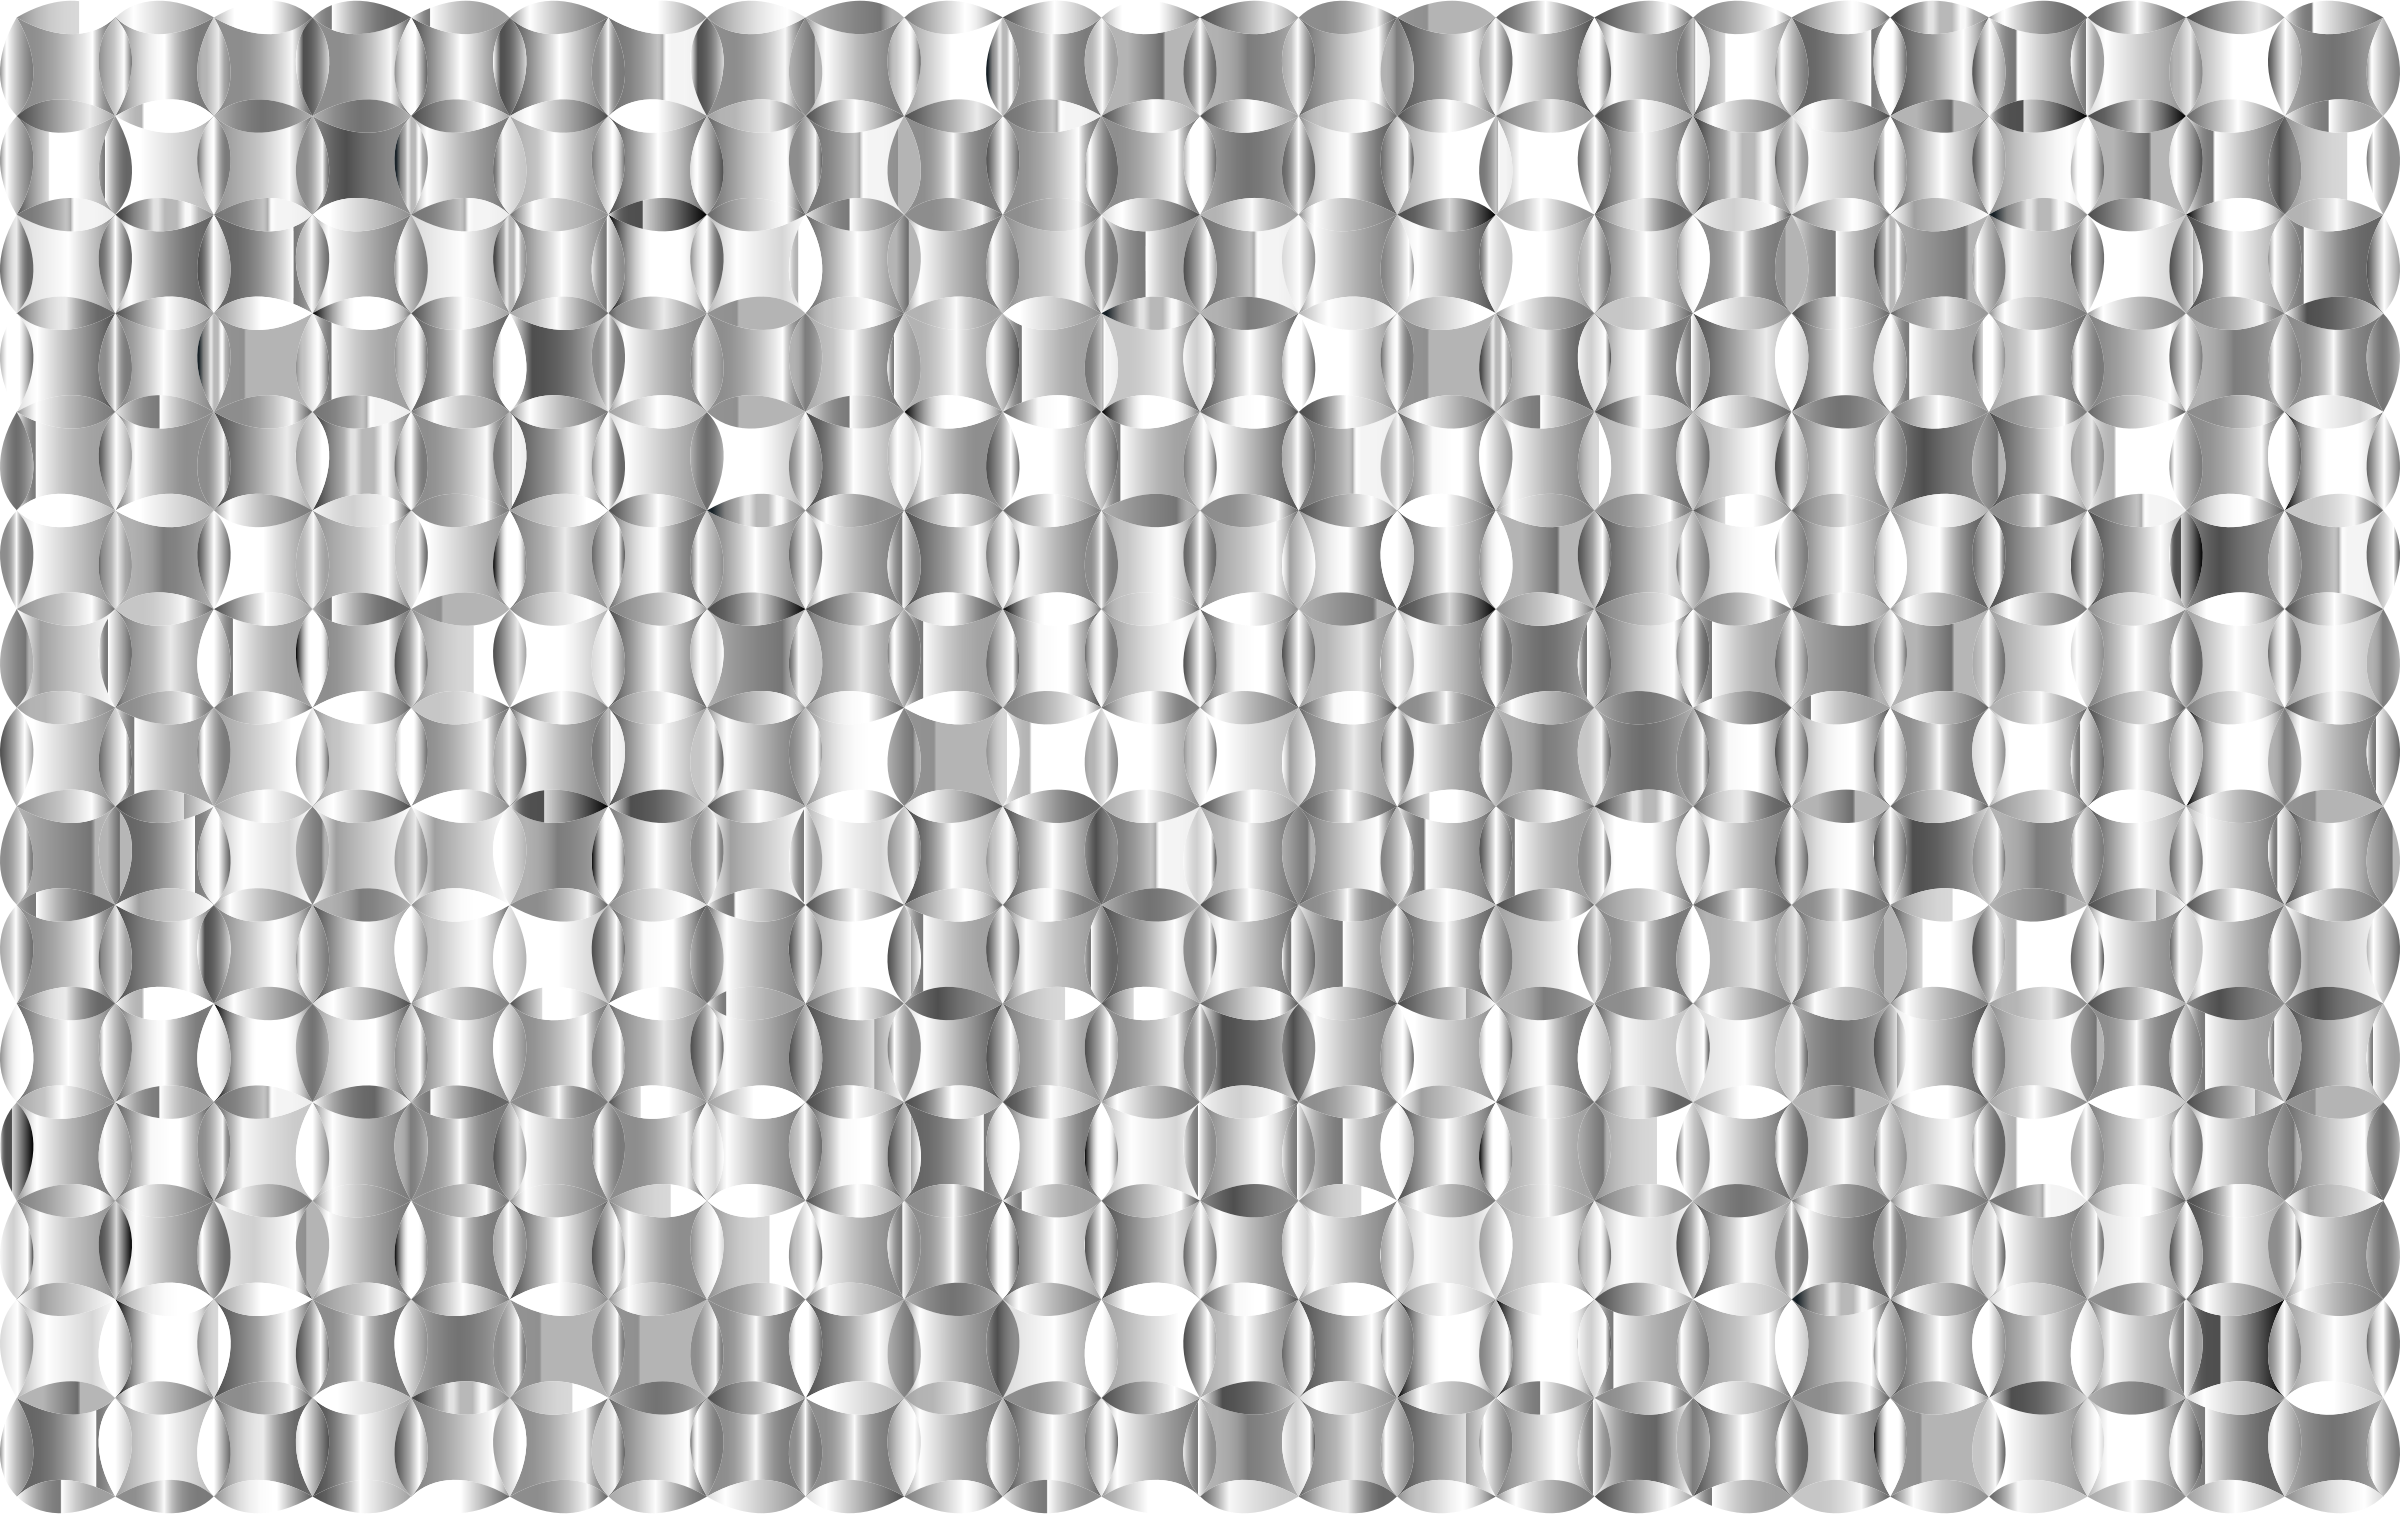 Grayscale Basic Pattern 2 Variation 5 by GDJ